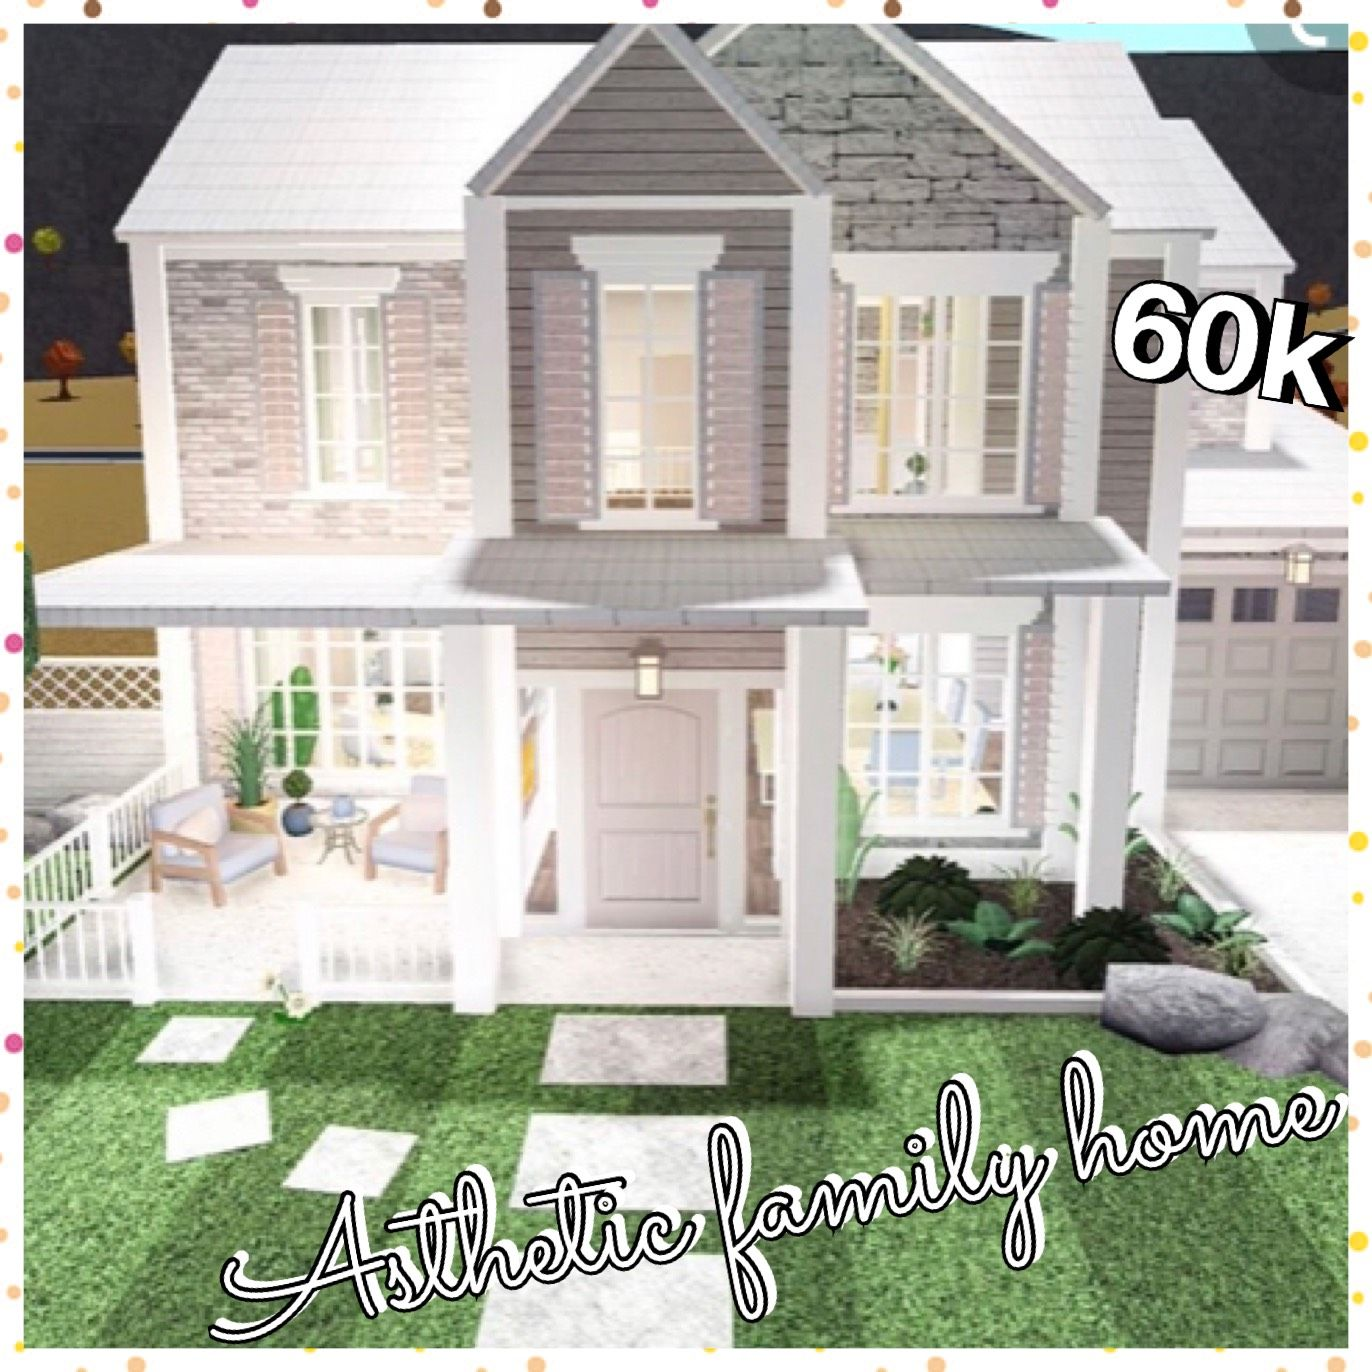 Pin By Kalynwaiters On Bloxberg In 2020 House Layouts Diy House Plans Luxury House Plans